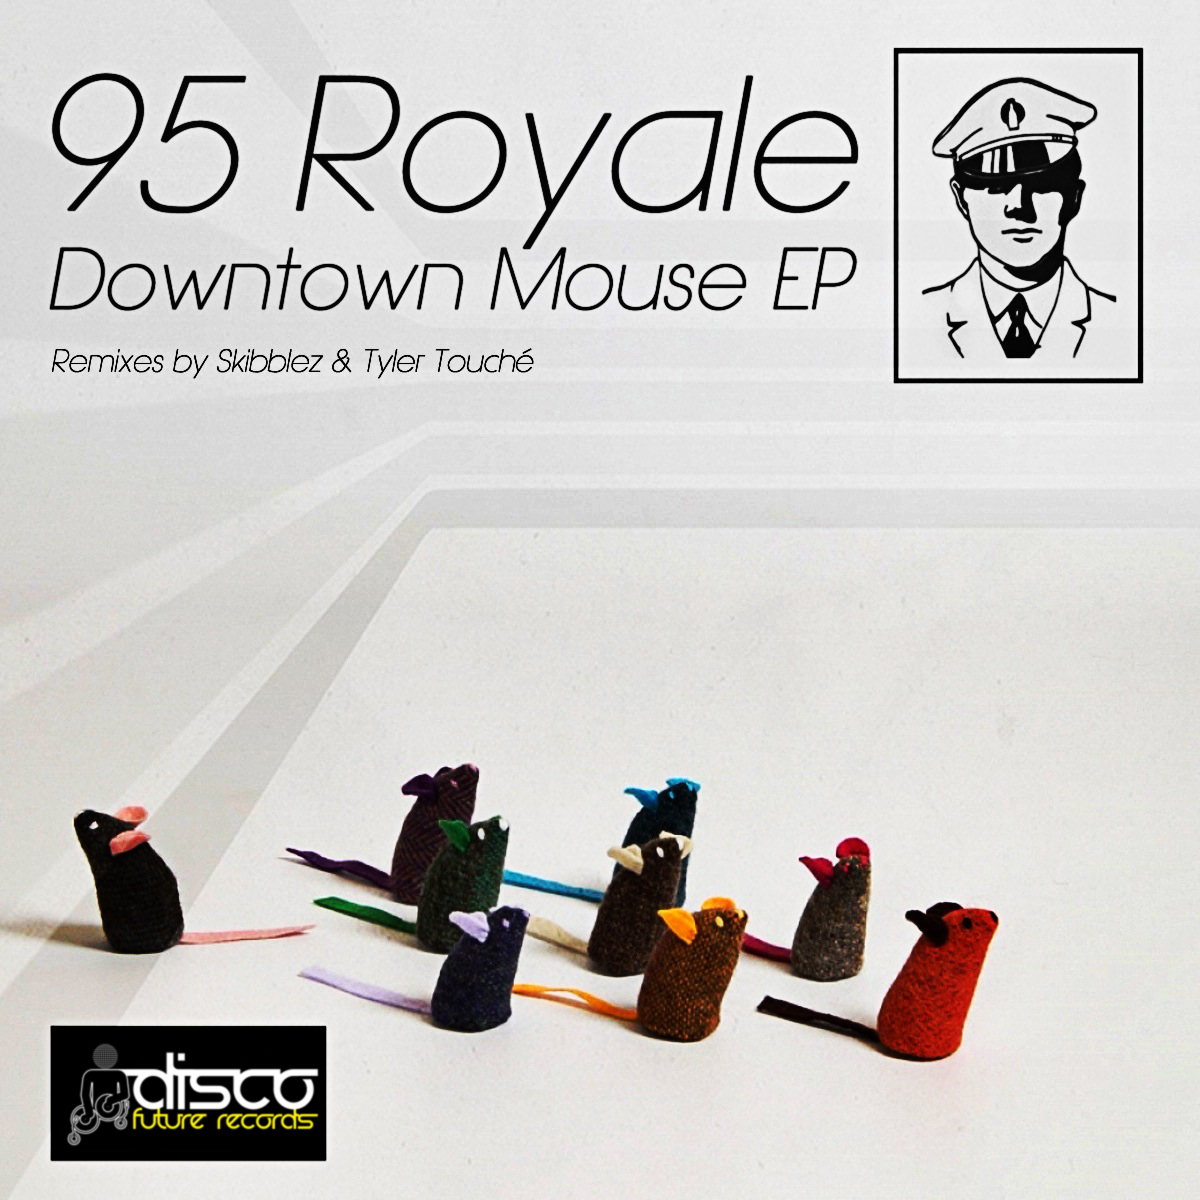 95 Royale - Canyon (Original Mix)